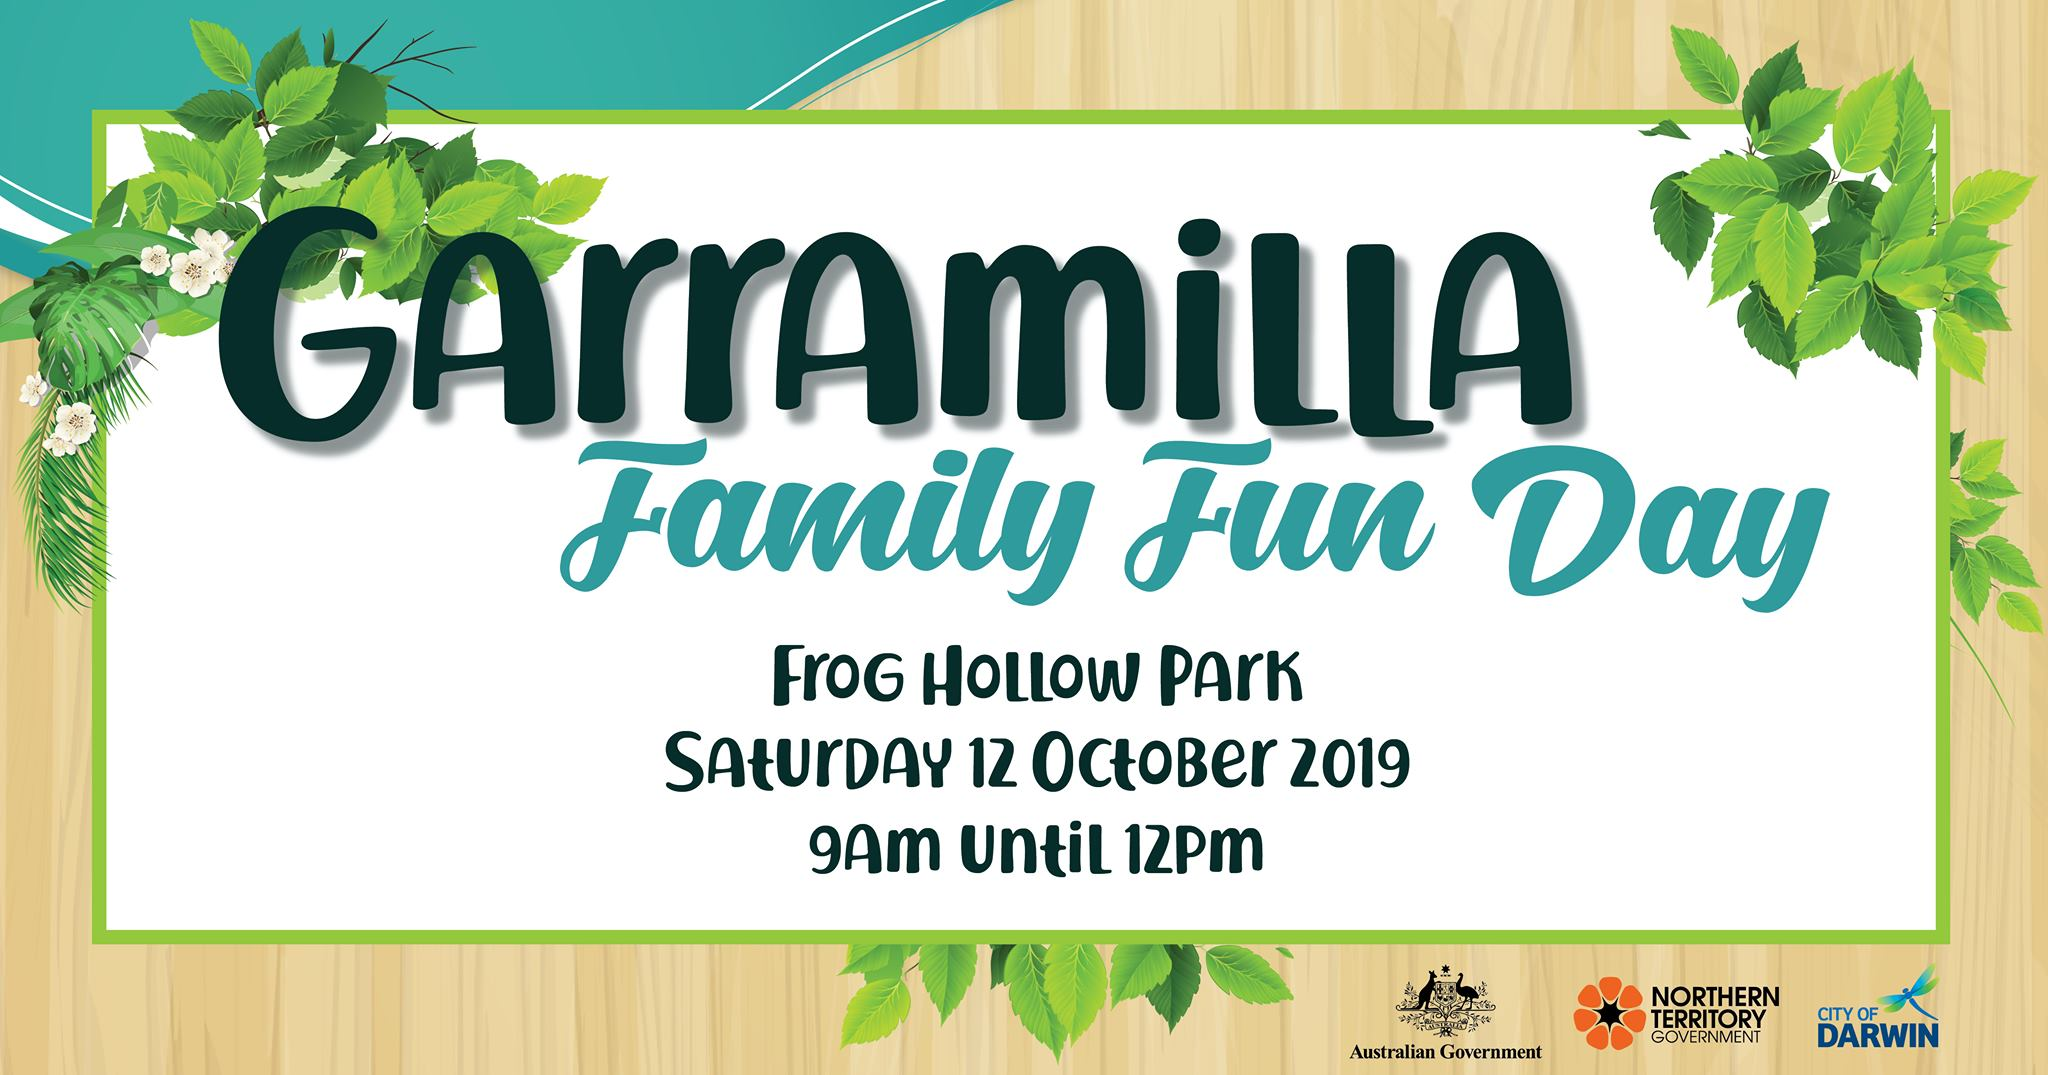 Garramilla Boulevard - Free family fun day